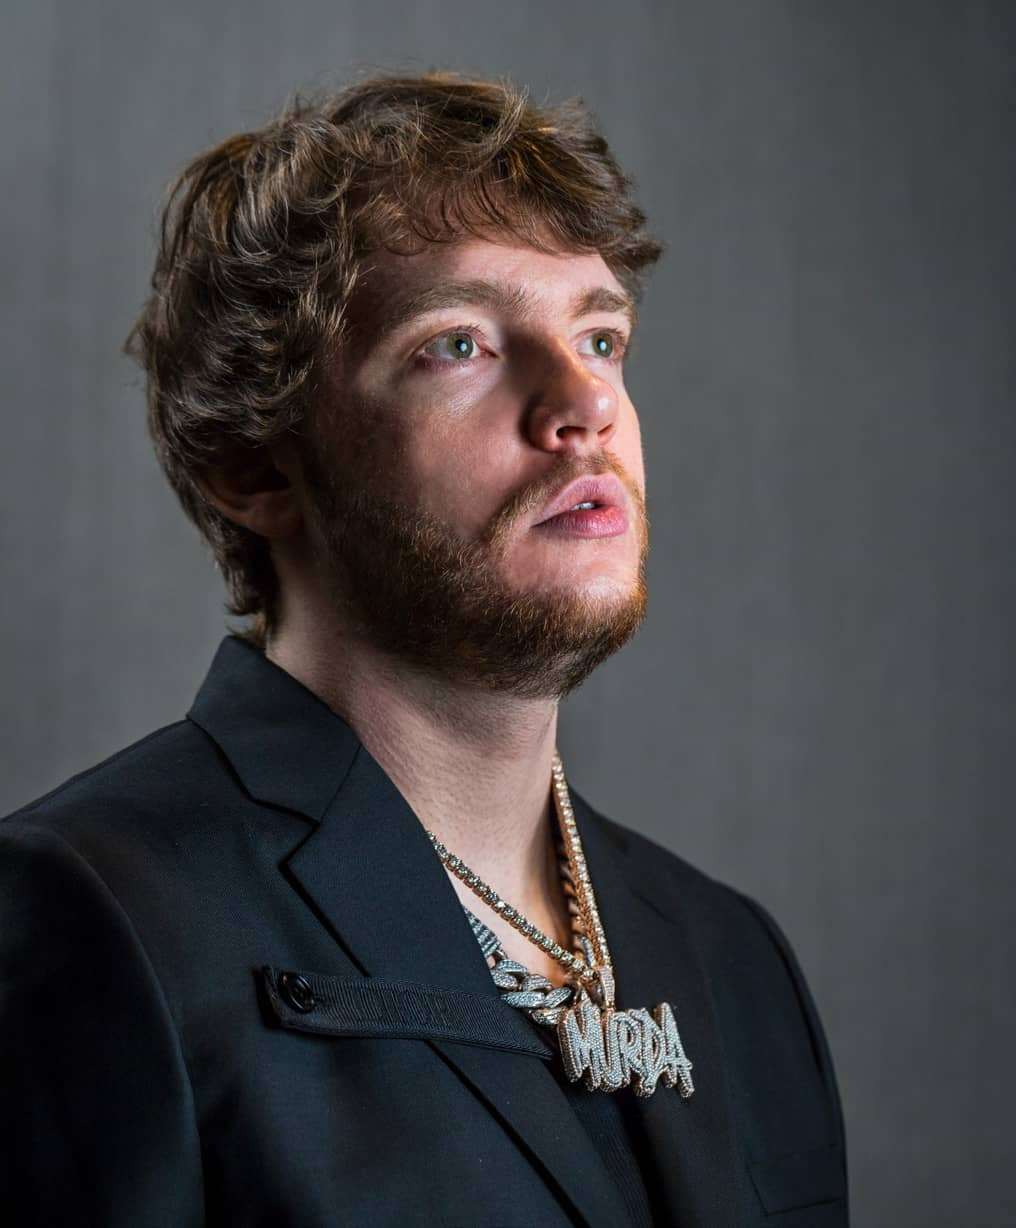 MURDA BEATZ: FROM SMALL-TOWN CANADA TO THE INTERNATIONAL STAGE